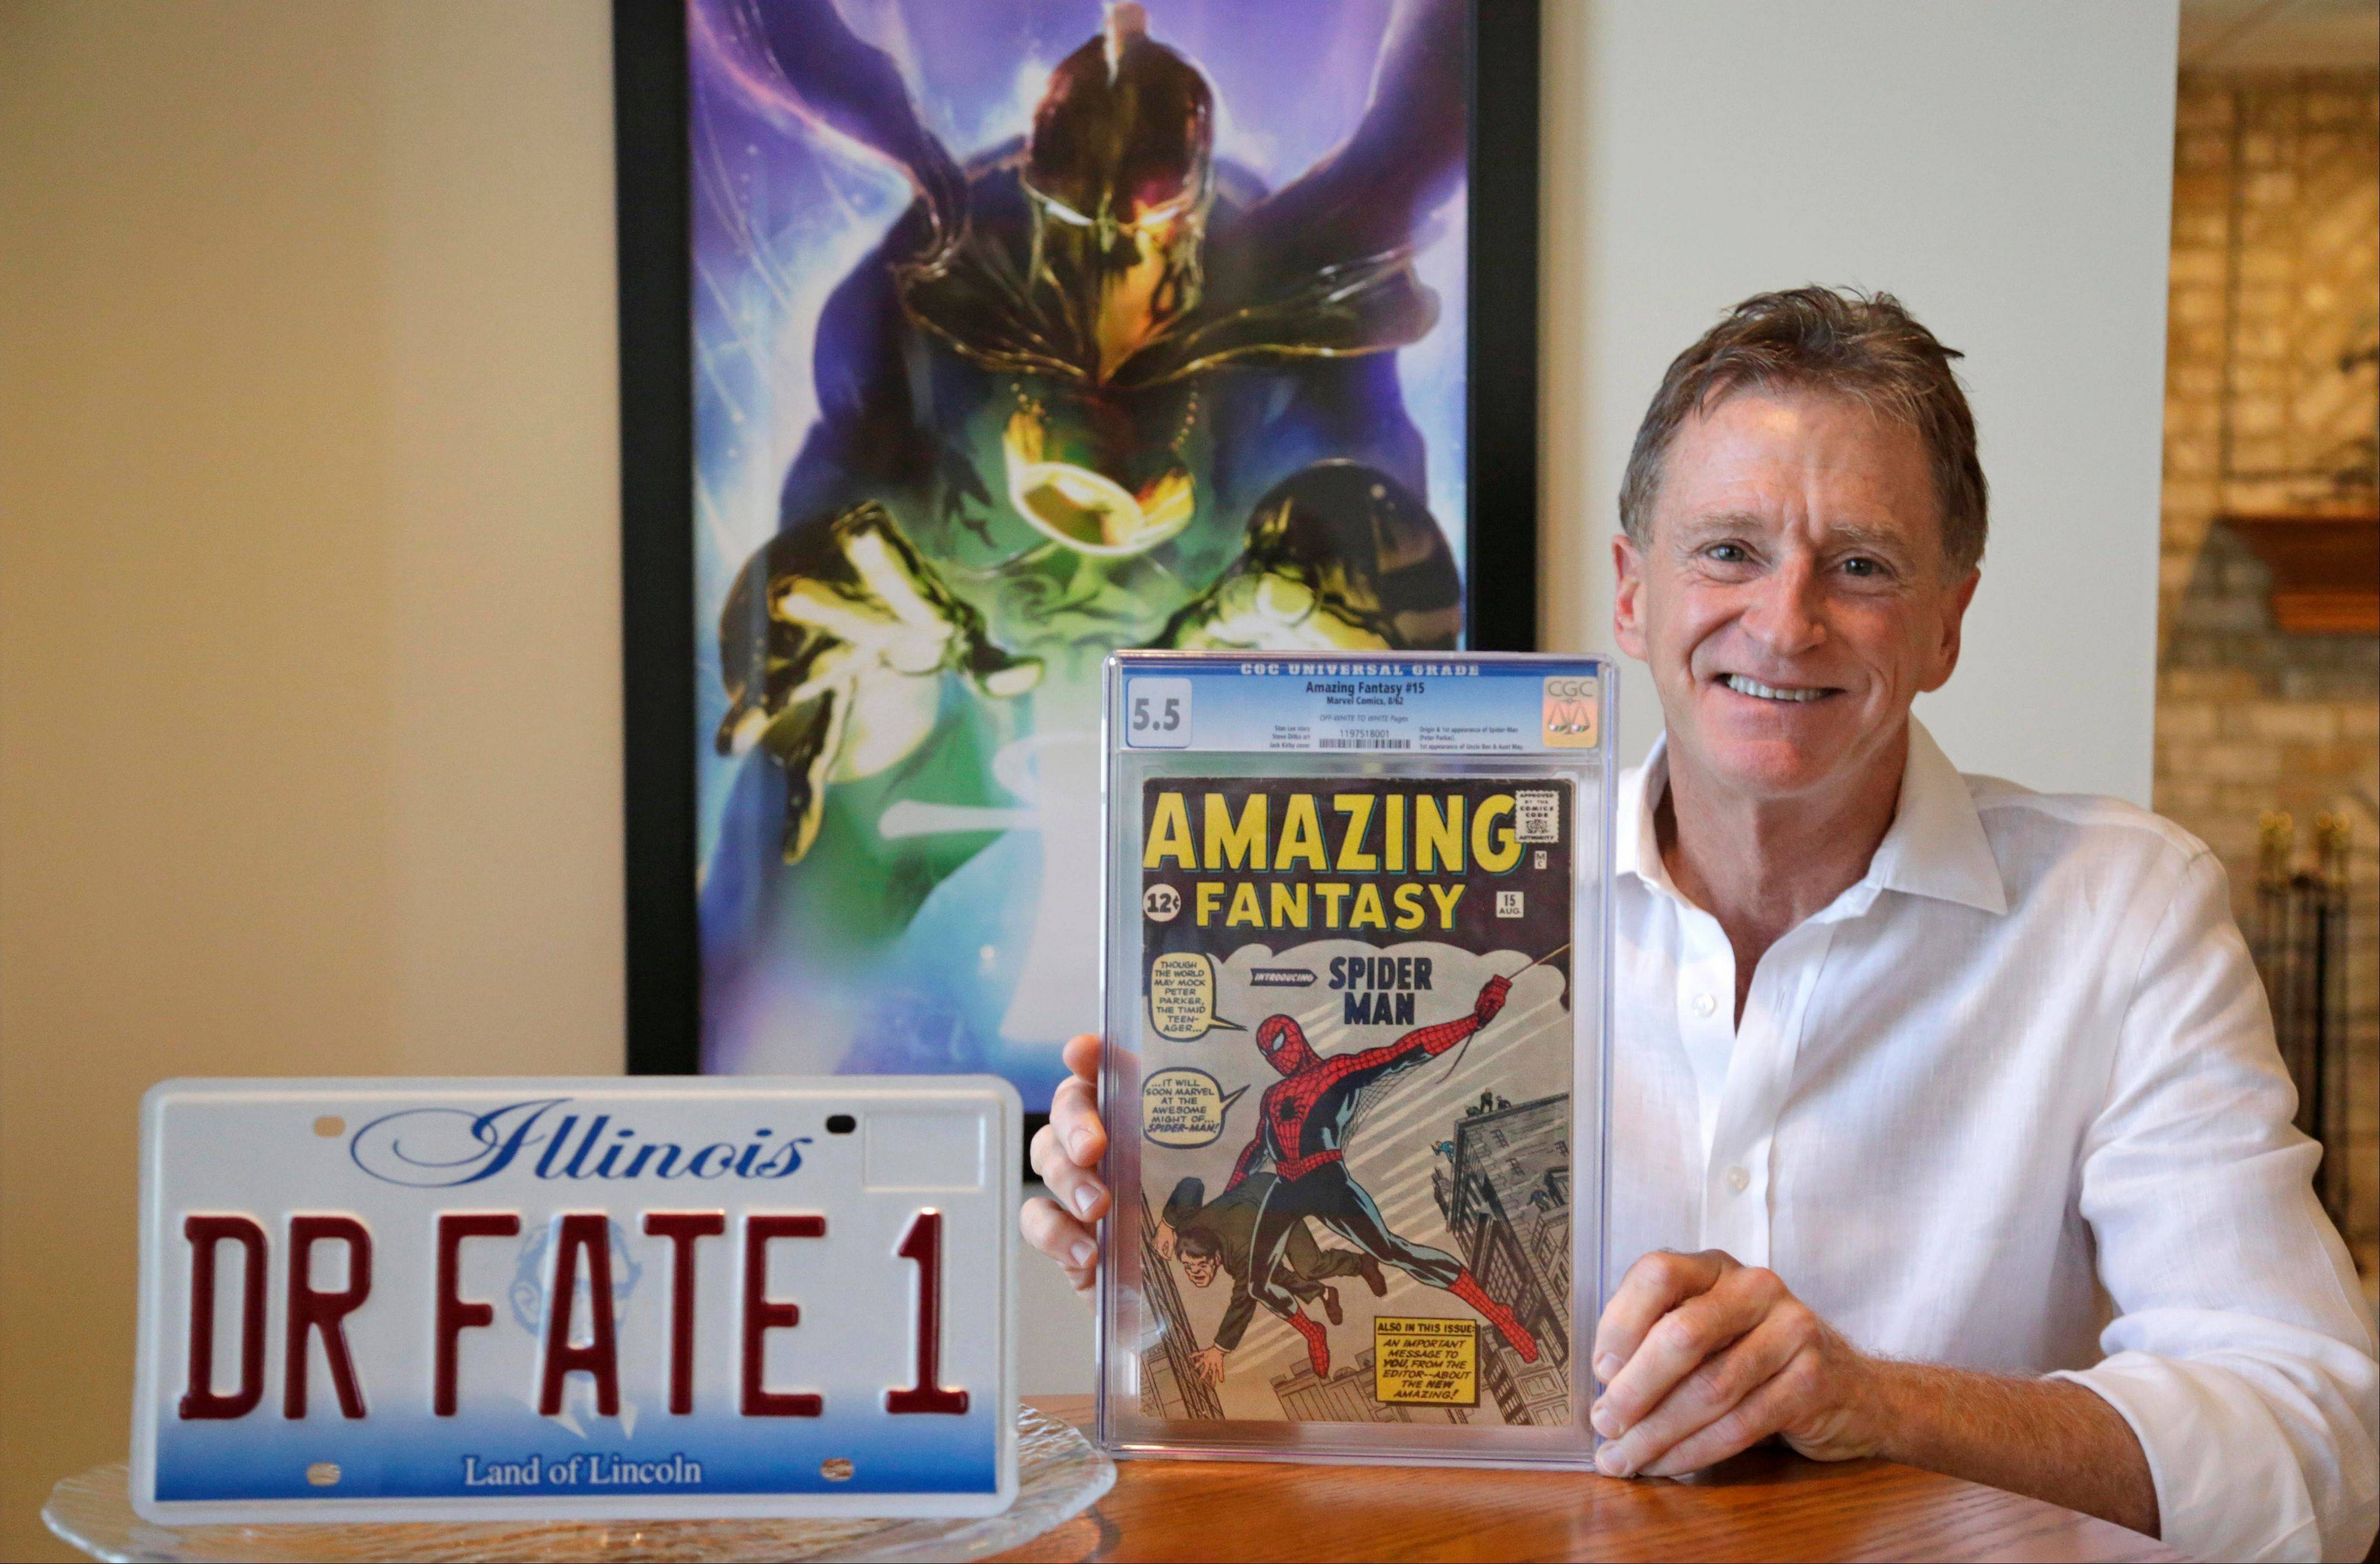 Steve Landman poses with one of his collectible comic books, a vanity license plate with the name of a childhood superhero on it, and a poster of the same superhero, Dr. Fate, at his home in Kildeer. Landman is selling hundreds of his comic books in an online auction that could bring in over $750,000 for his family and, more importantly, raise awareness about the disease that is robbing him of his mobility and profession.